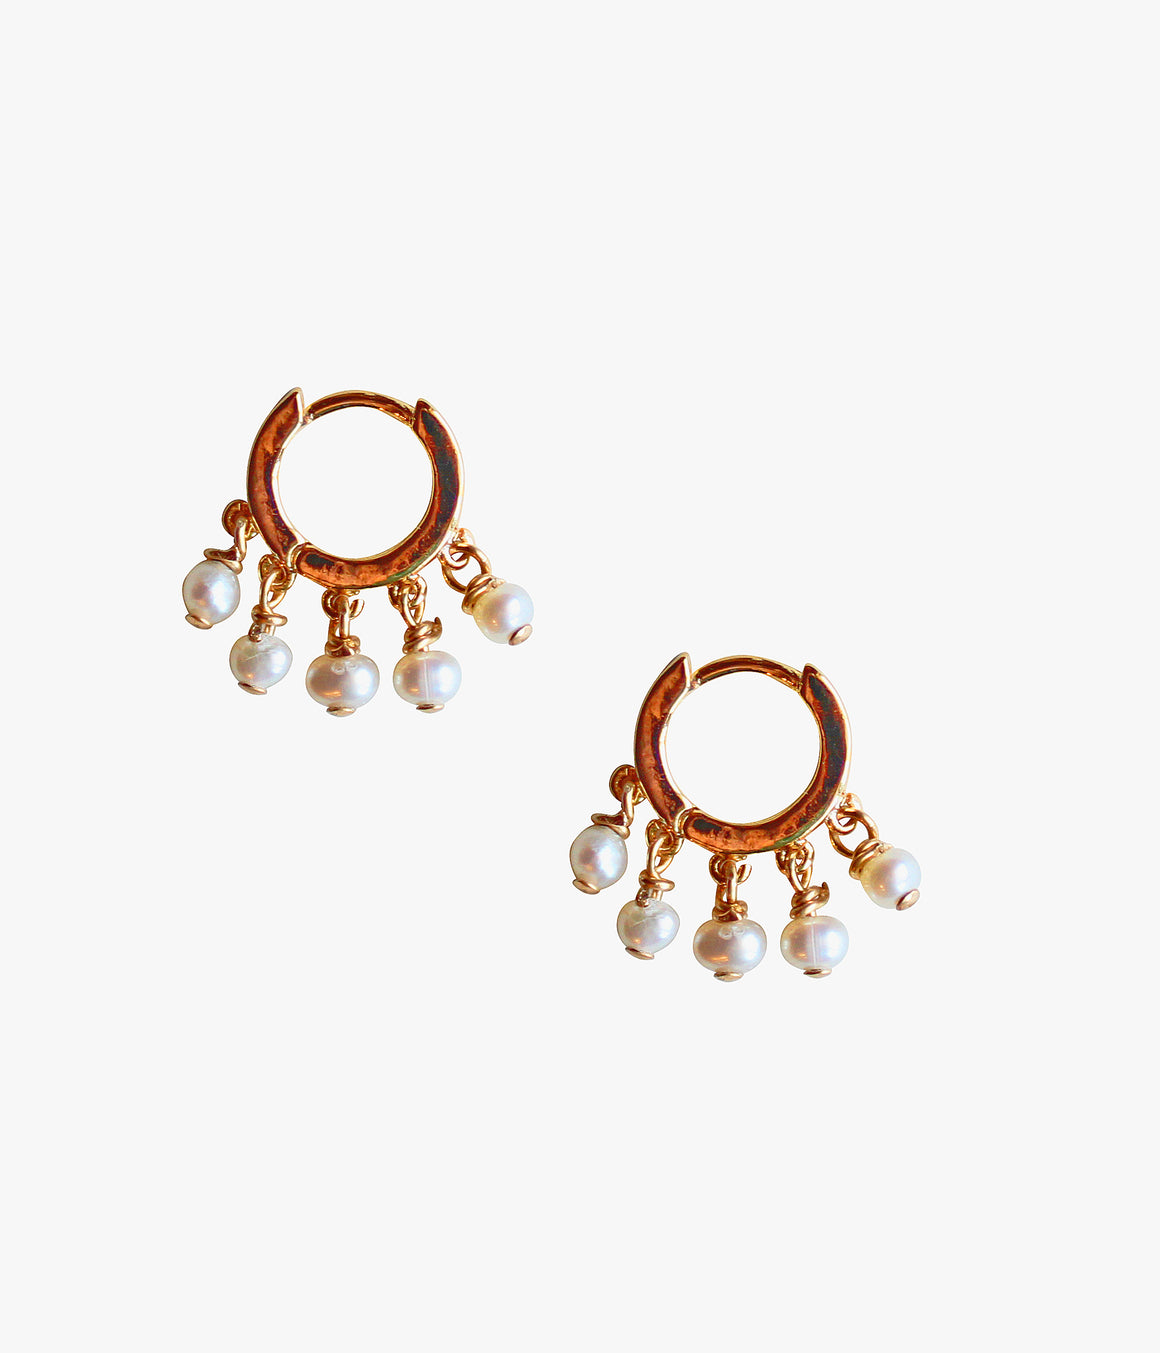 Oaklynn earrings